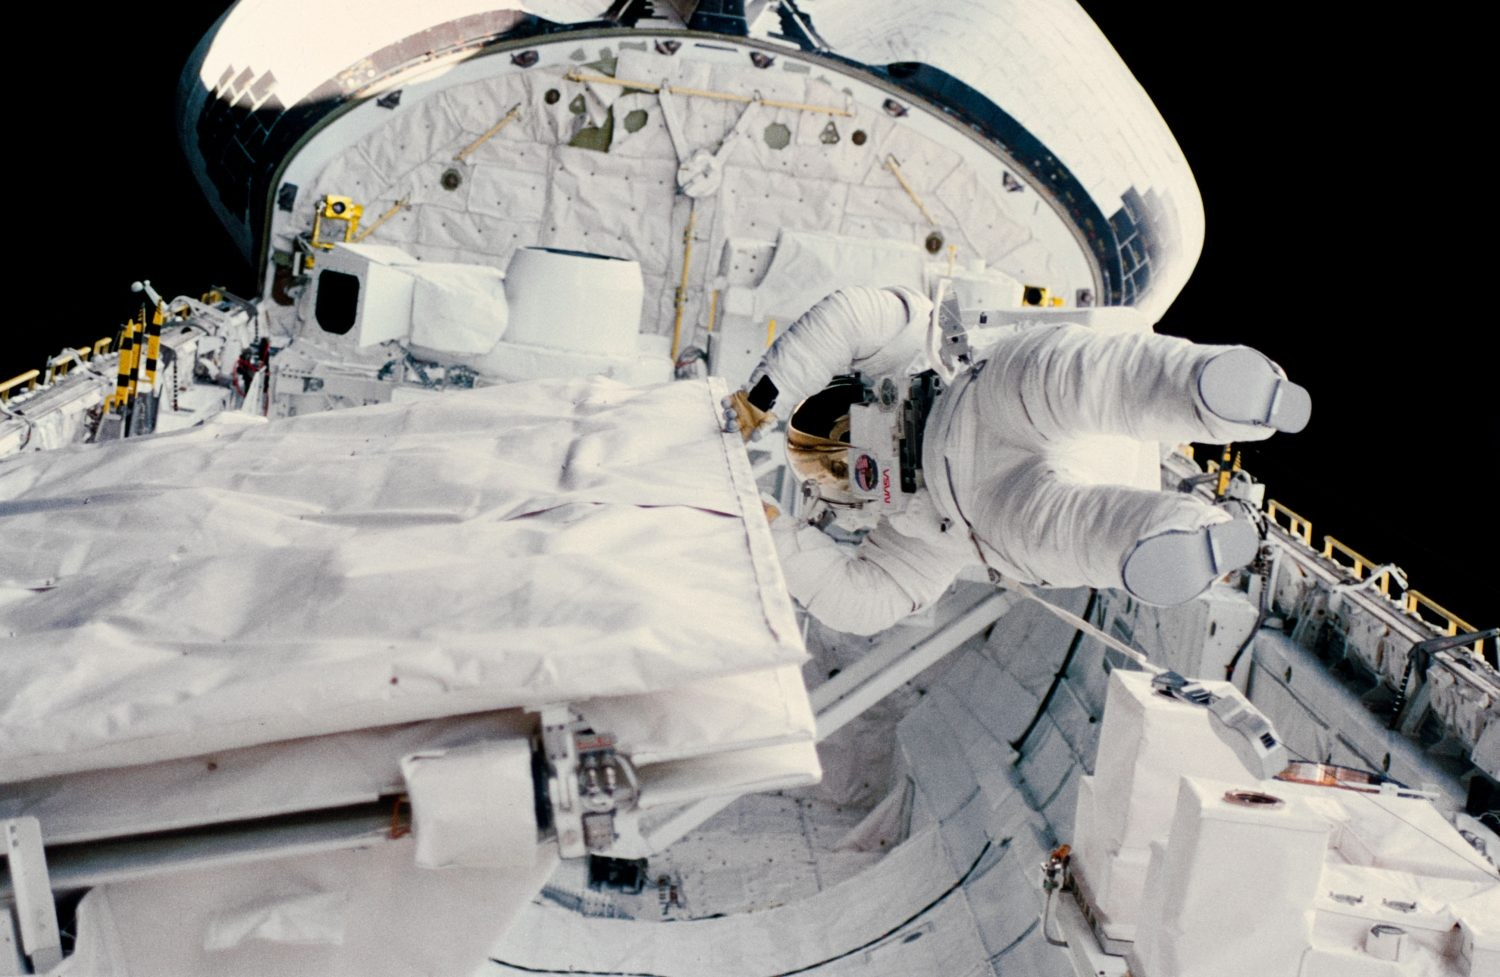 Kathy Sullivan becomes the first US woman to spacewalk, 11 October 1984. Here Sullivan is checking the latch of the SIR-B antenna in the Space Shuttle Challenger's open cargo. Credit: NASA